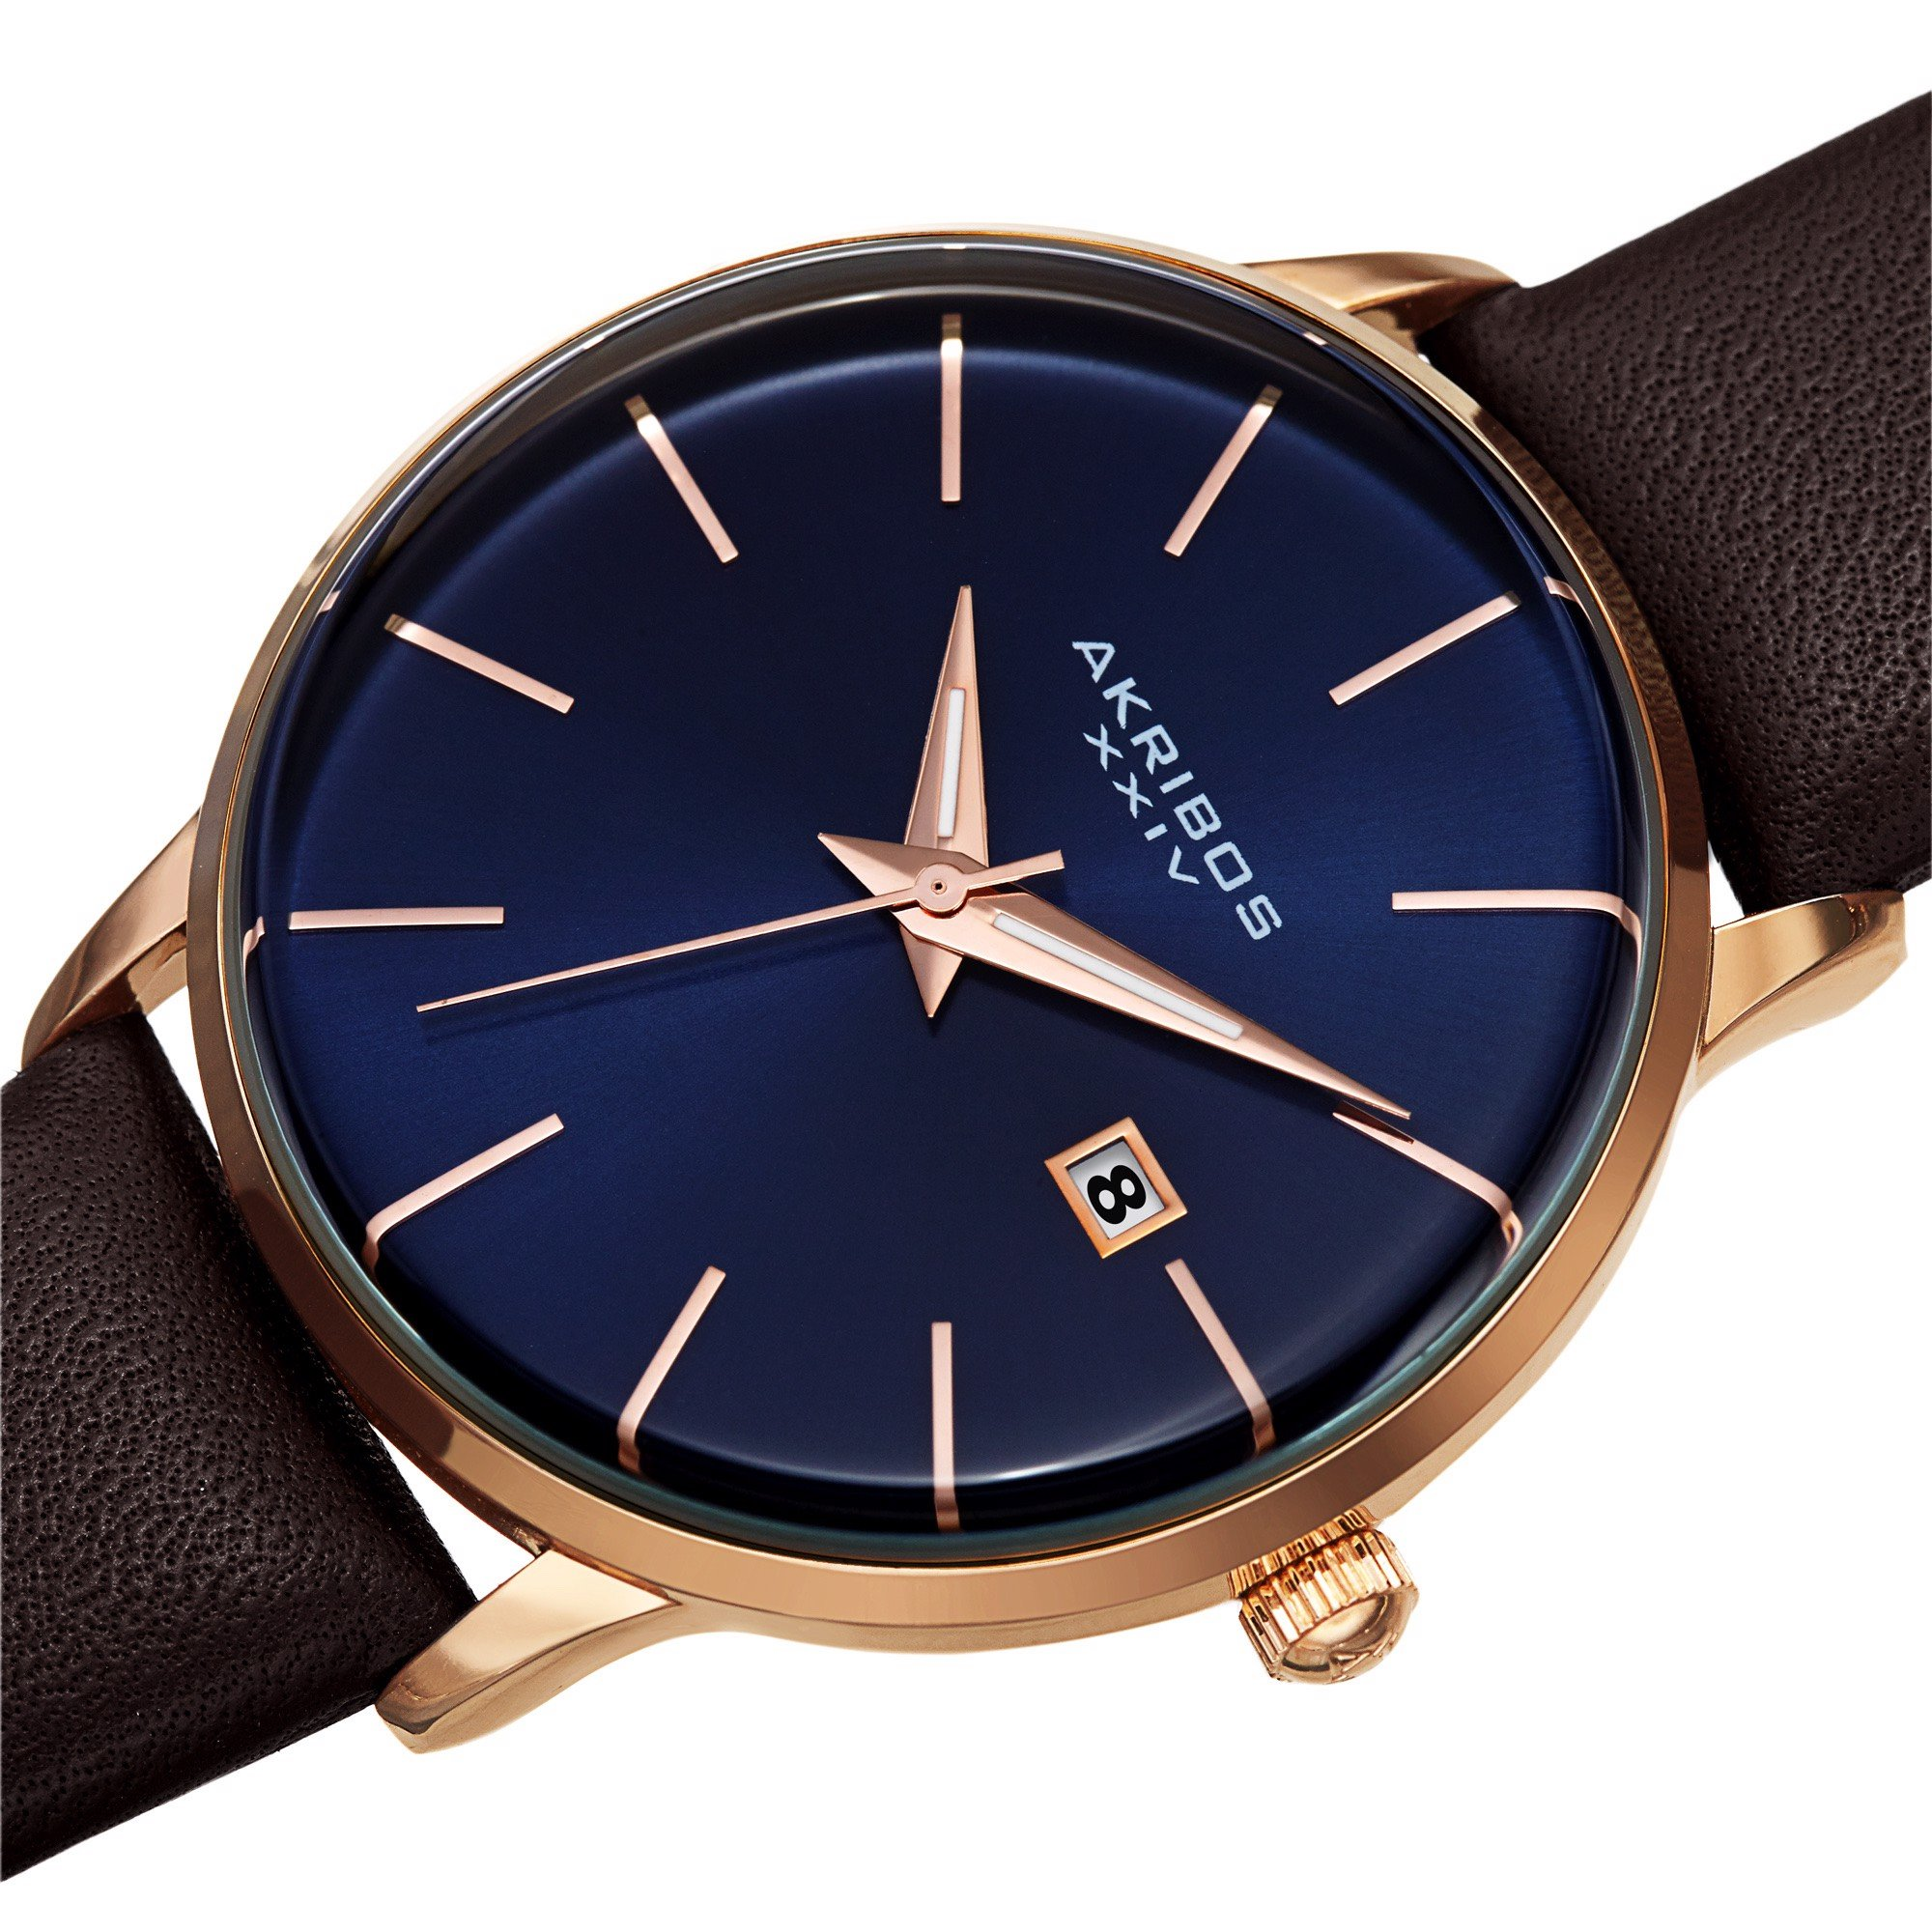 Đồng Hồ Akribos XXIV AK1064 Classic Quartz Date Sunray Dial Leather Strap Watch